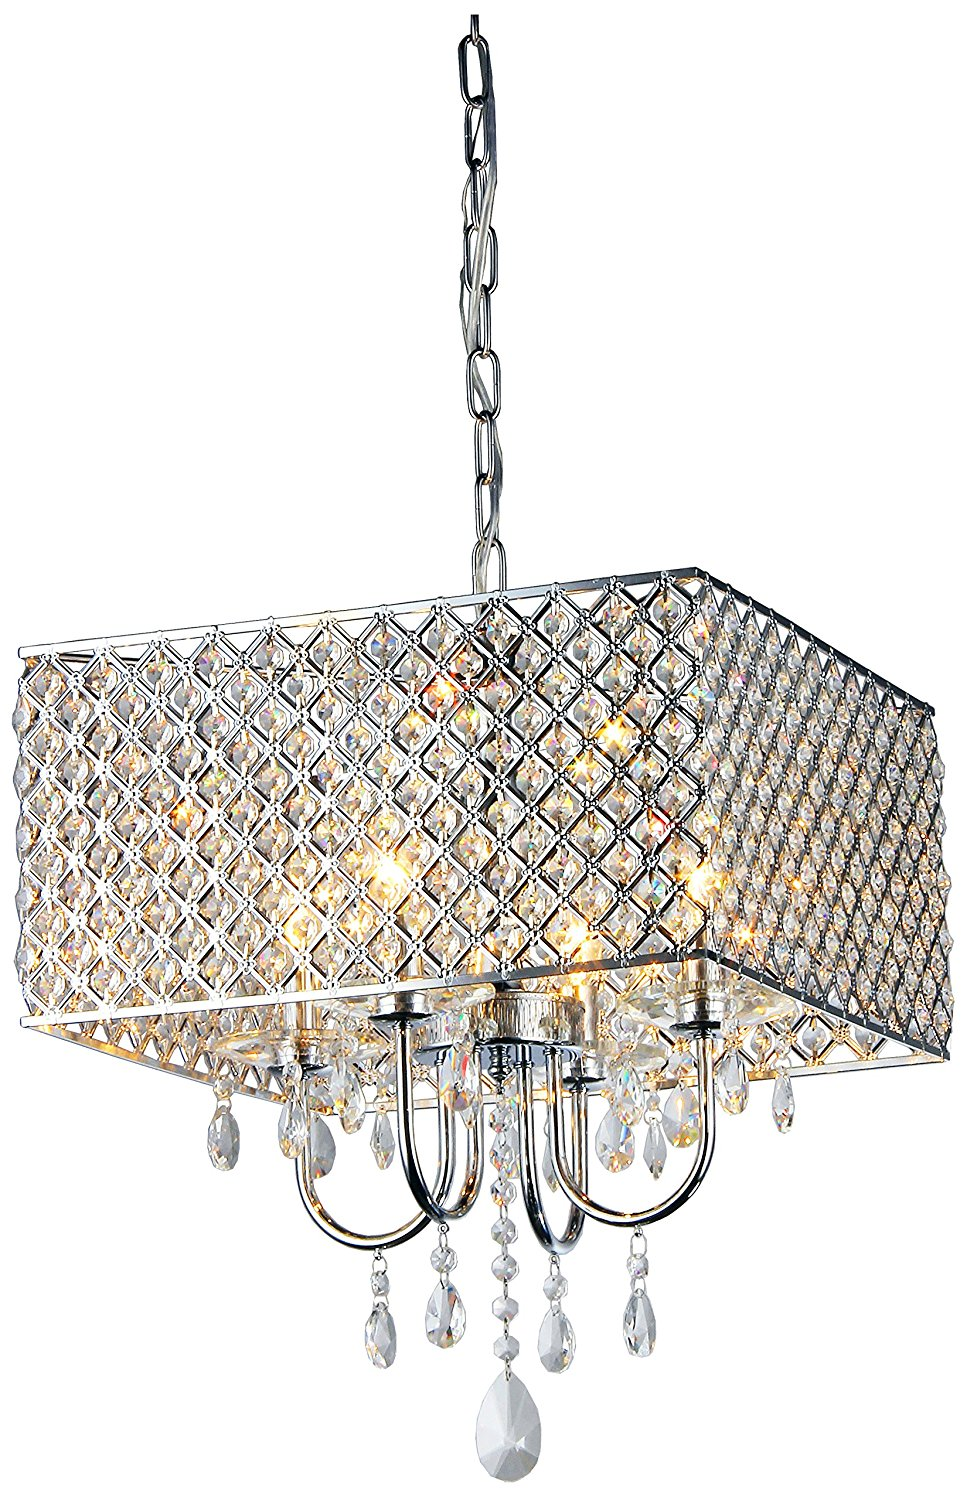 How to choose the perfect chandelier with 5 handy tips - Can light chandelier ...